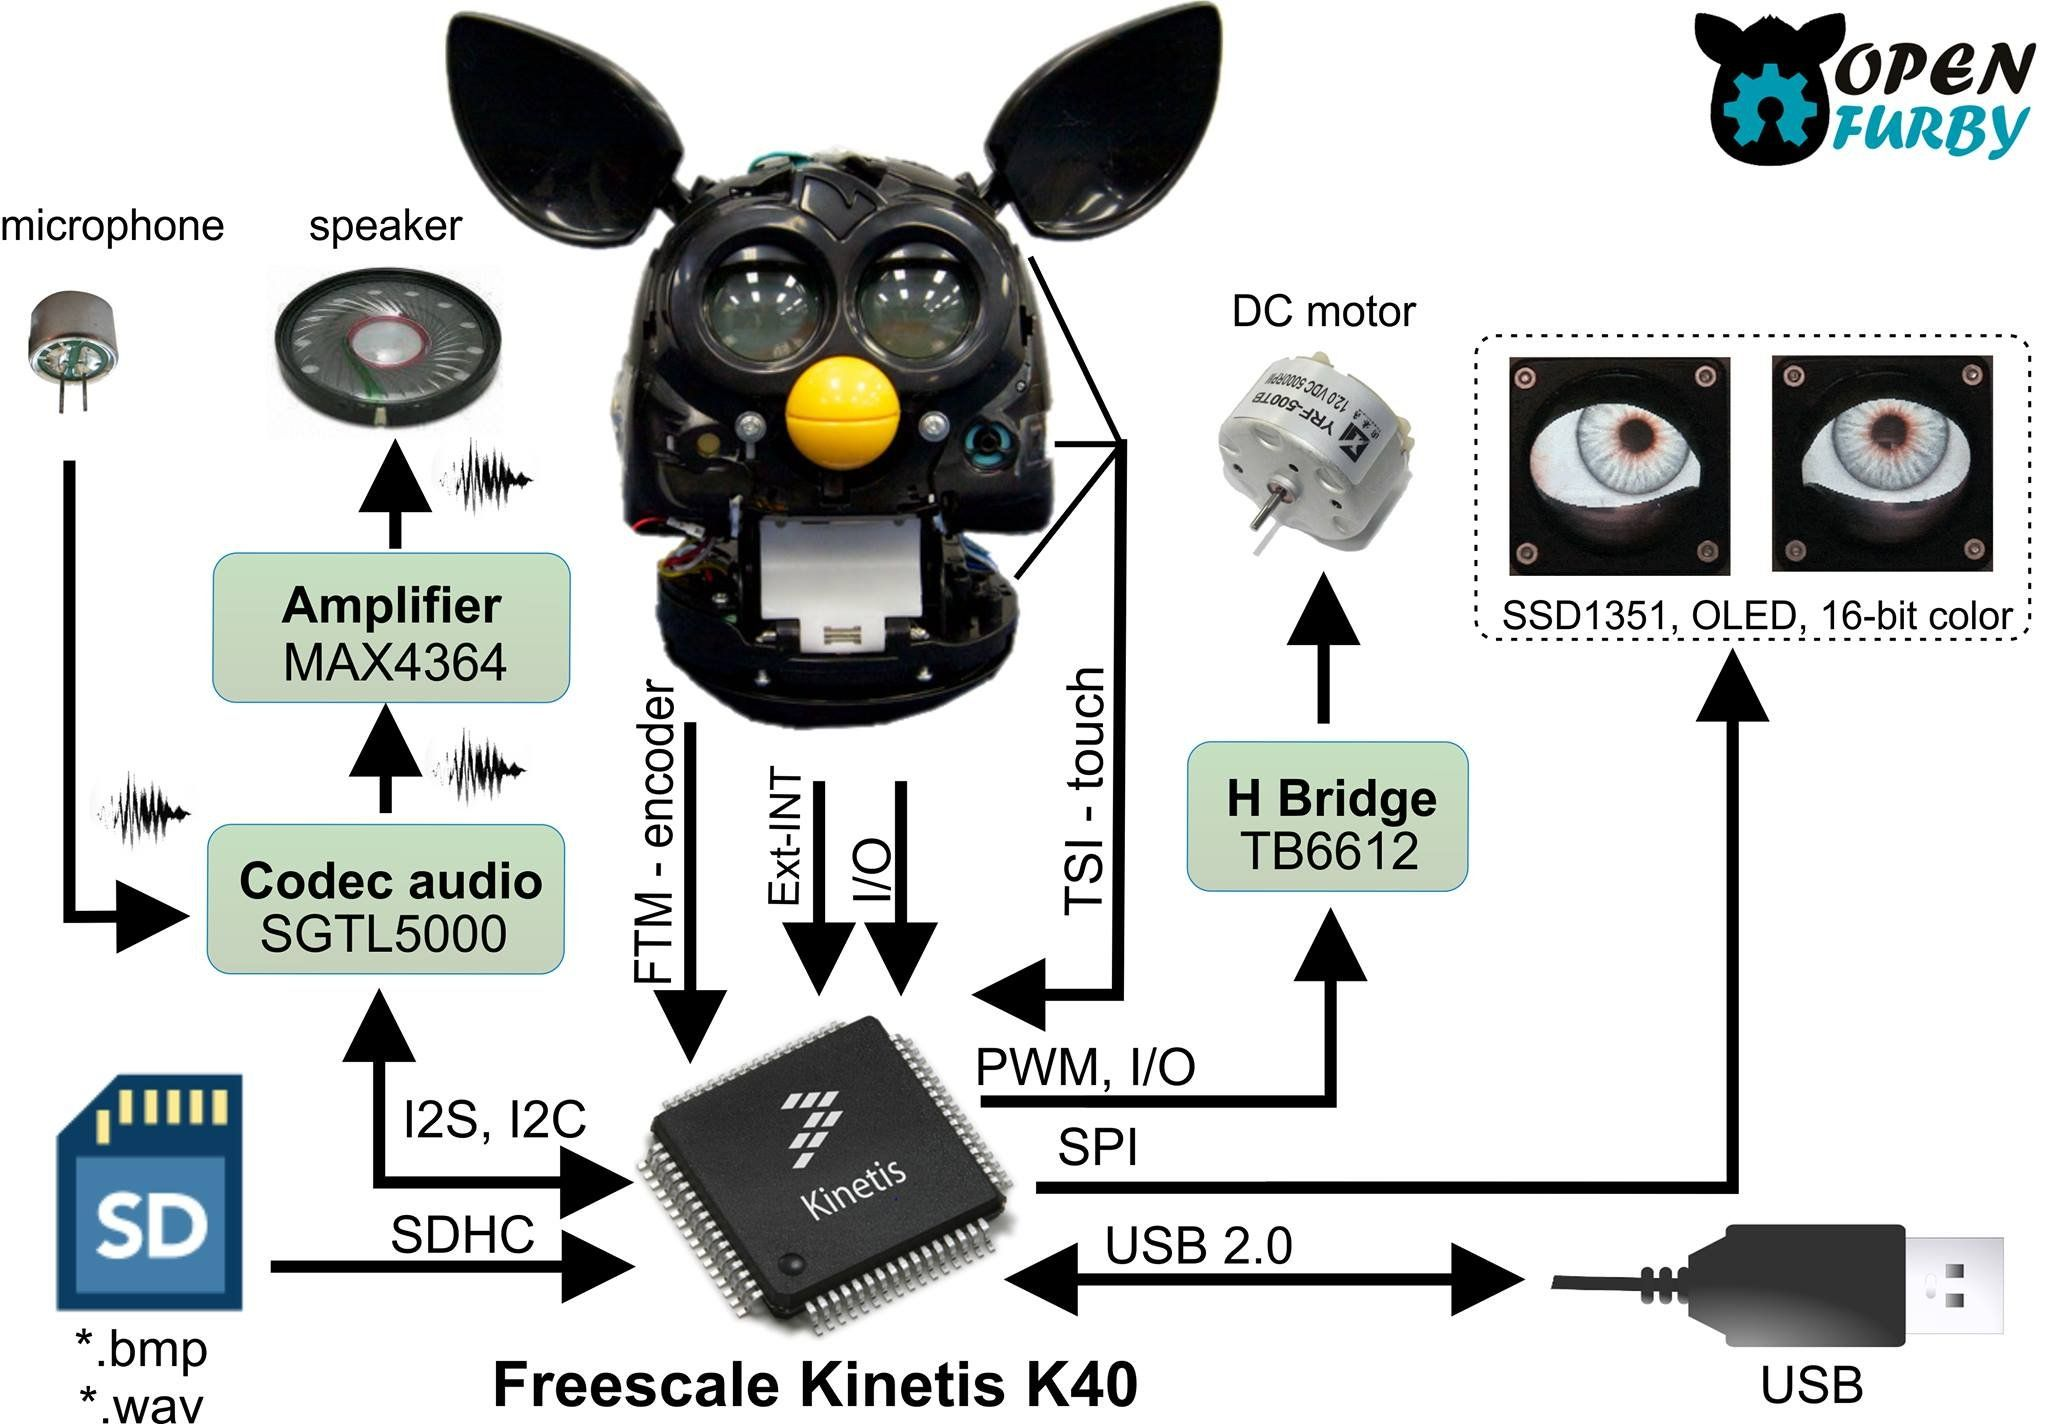 The Furby is now a terrifying, open-source robot that you